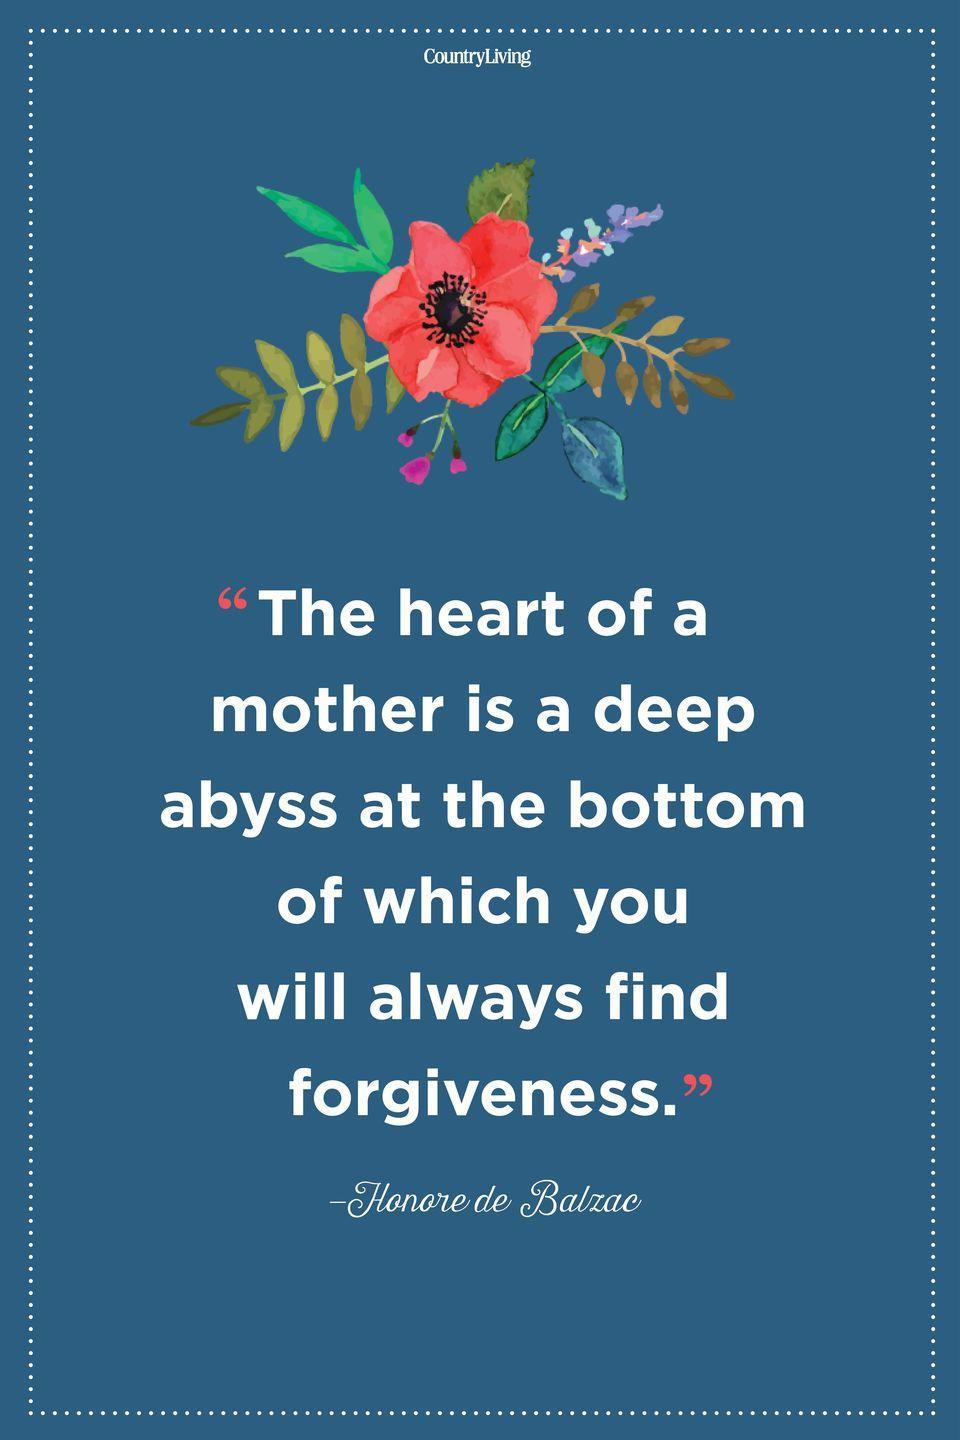 "<p>""The heart of a mother is a deep abyss at the bottom of which you will always find forgiveness.</p>"